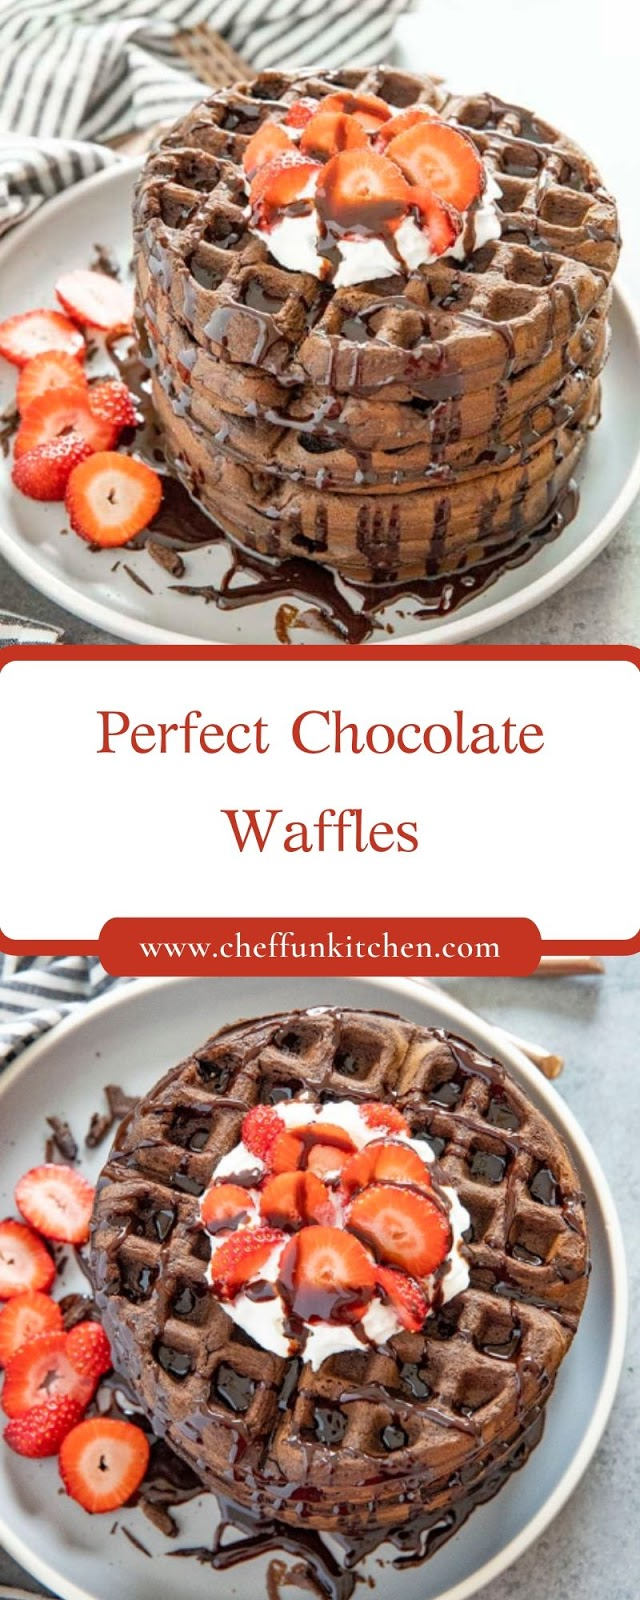 Perfect Chocolate Waffles